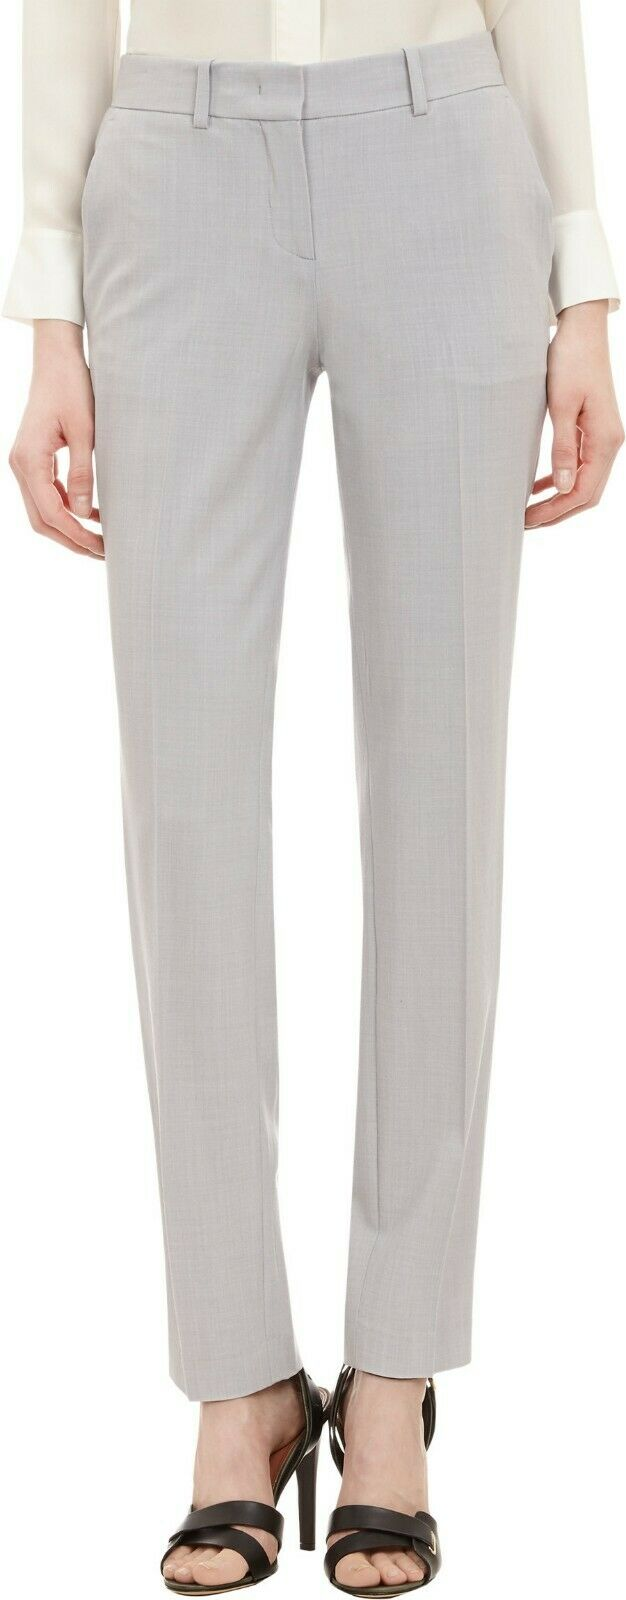 Theory Super Slim Women's Pants in Light Heather Grey US Size 0